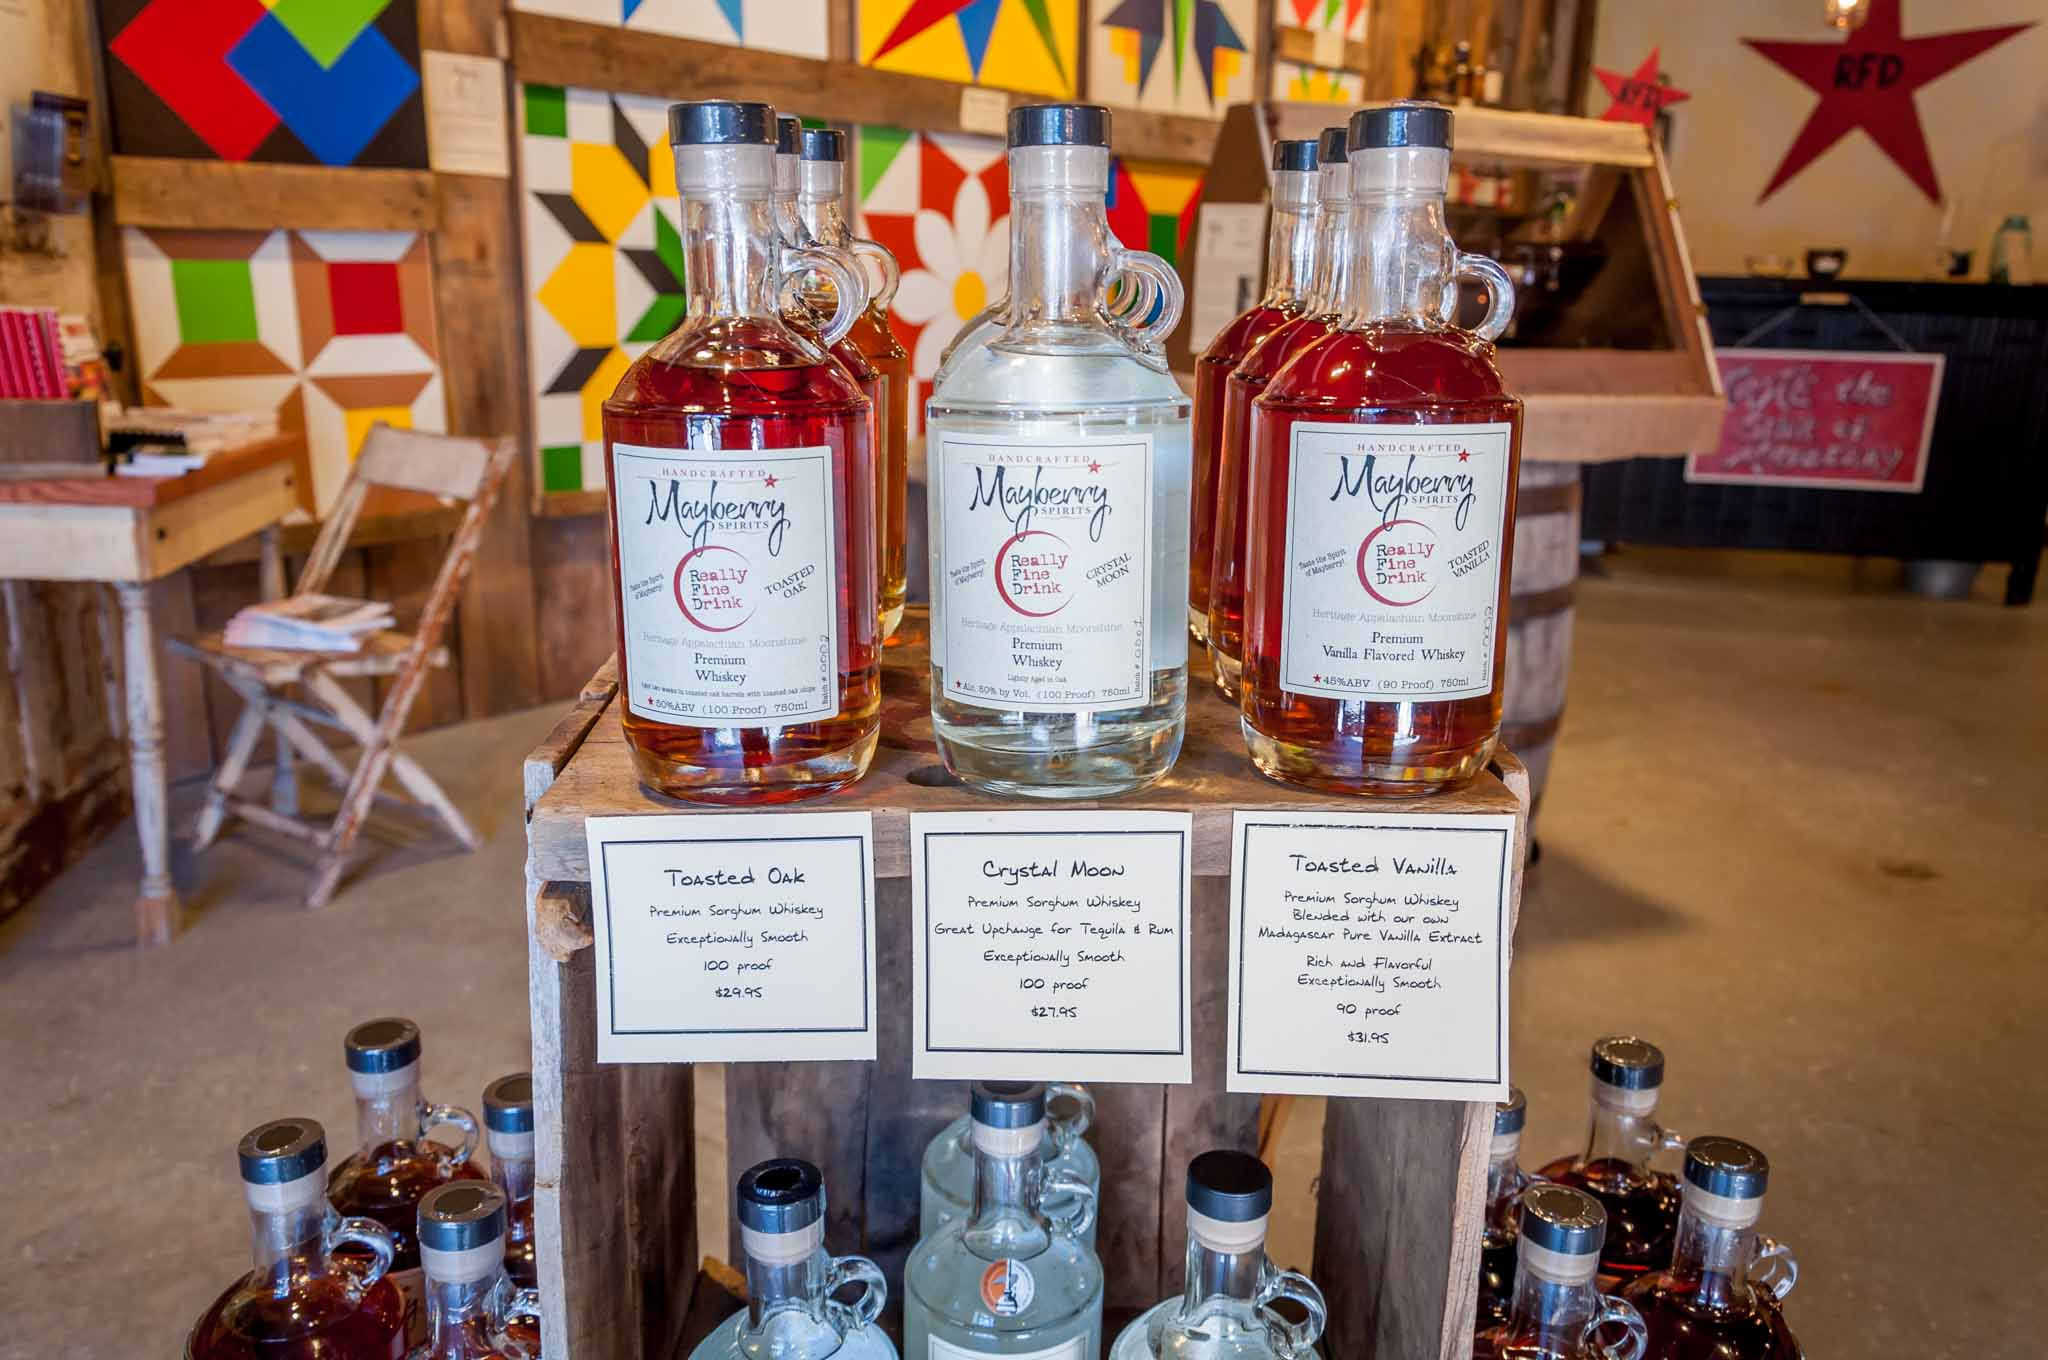 Whiskeys for sale at Mayberry Spirits. Visiting the distillery is one of the great things to do in Mount Airy, NC.